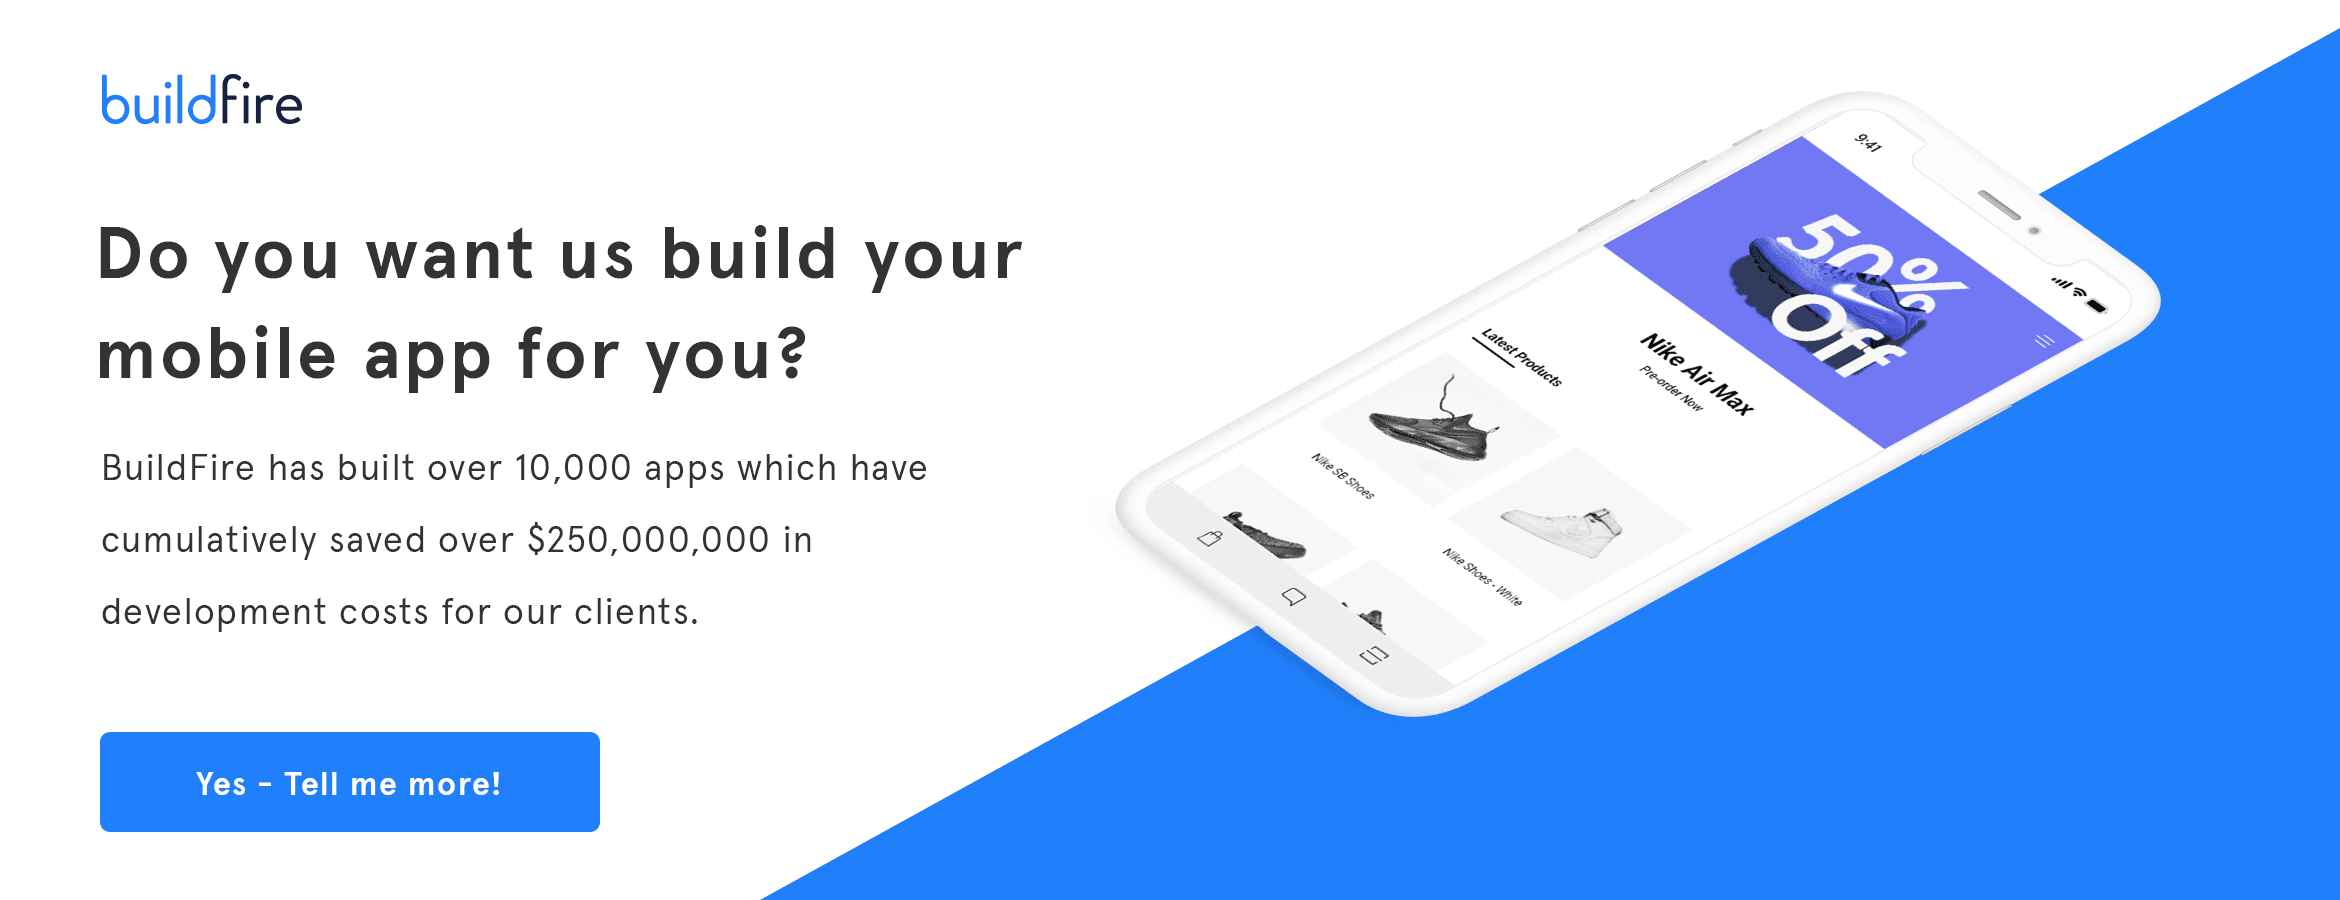 How Much Money Can You Make with a Mobile App - BuildFire